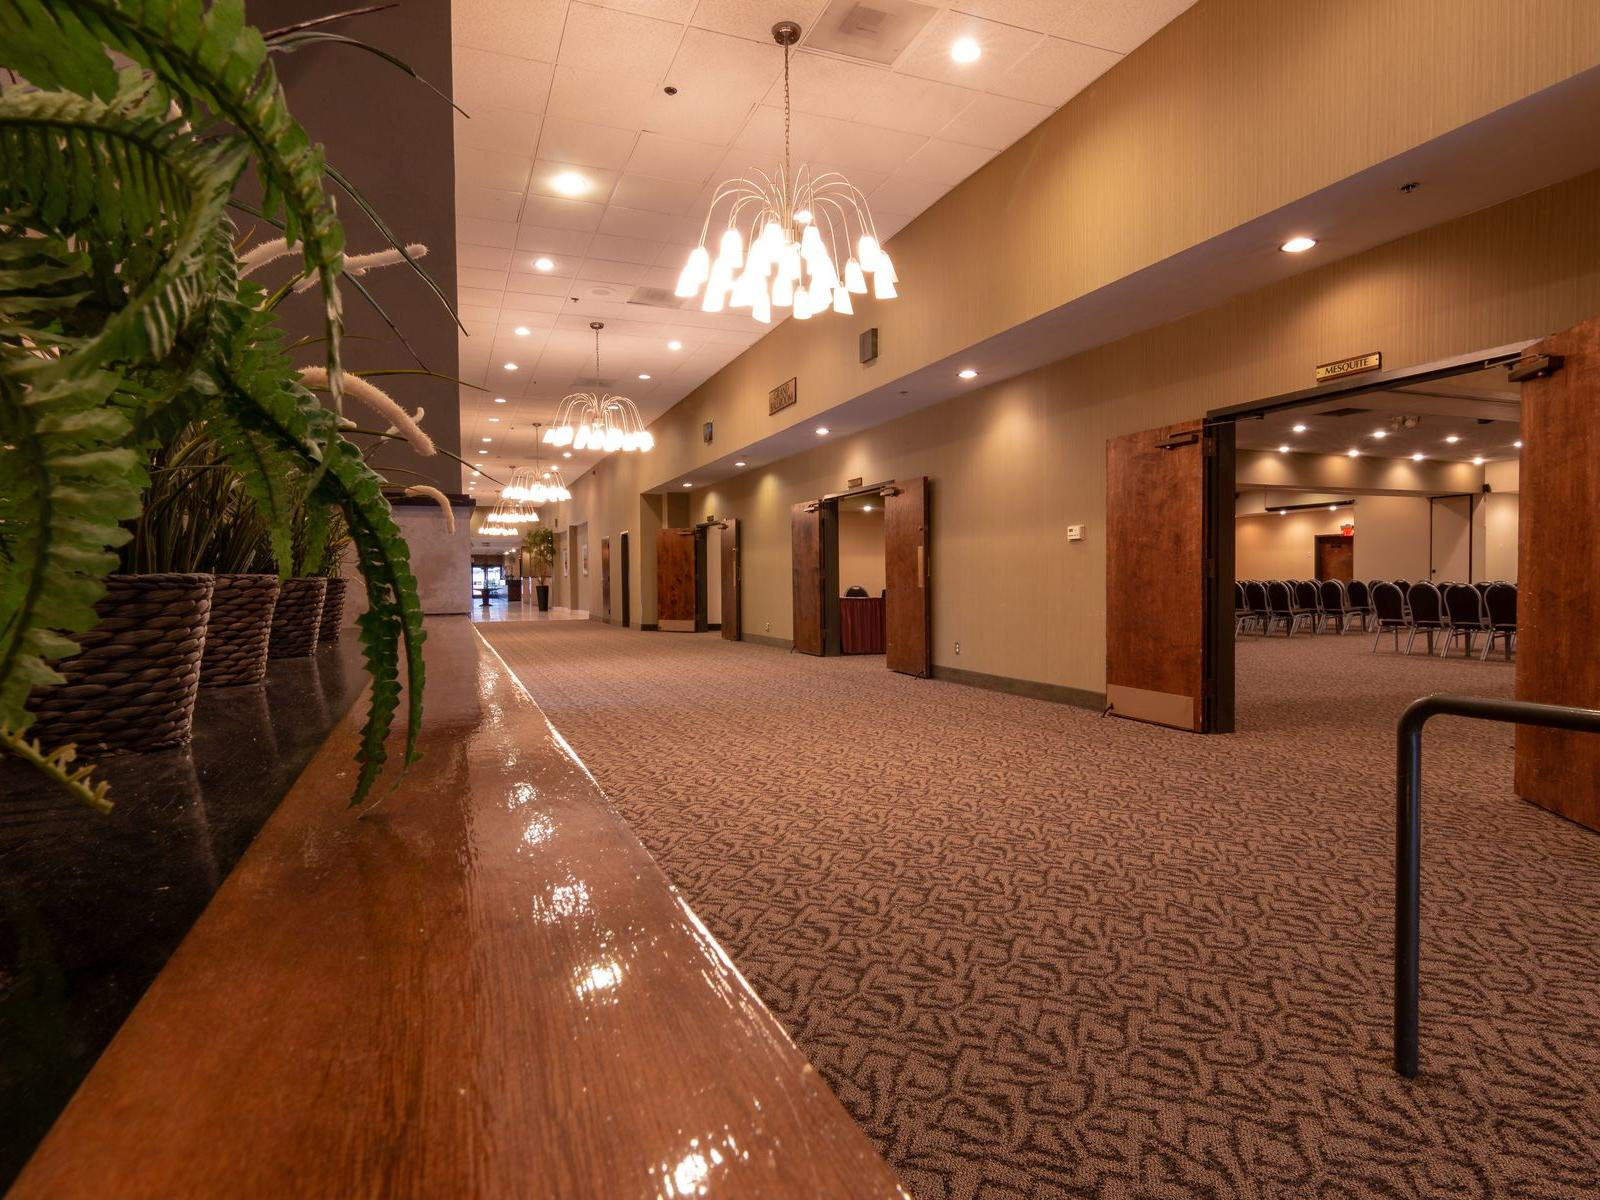 Hallway view of multiple ballrooms